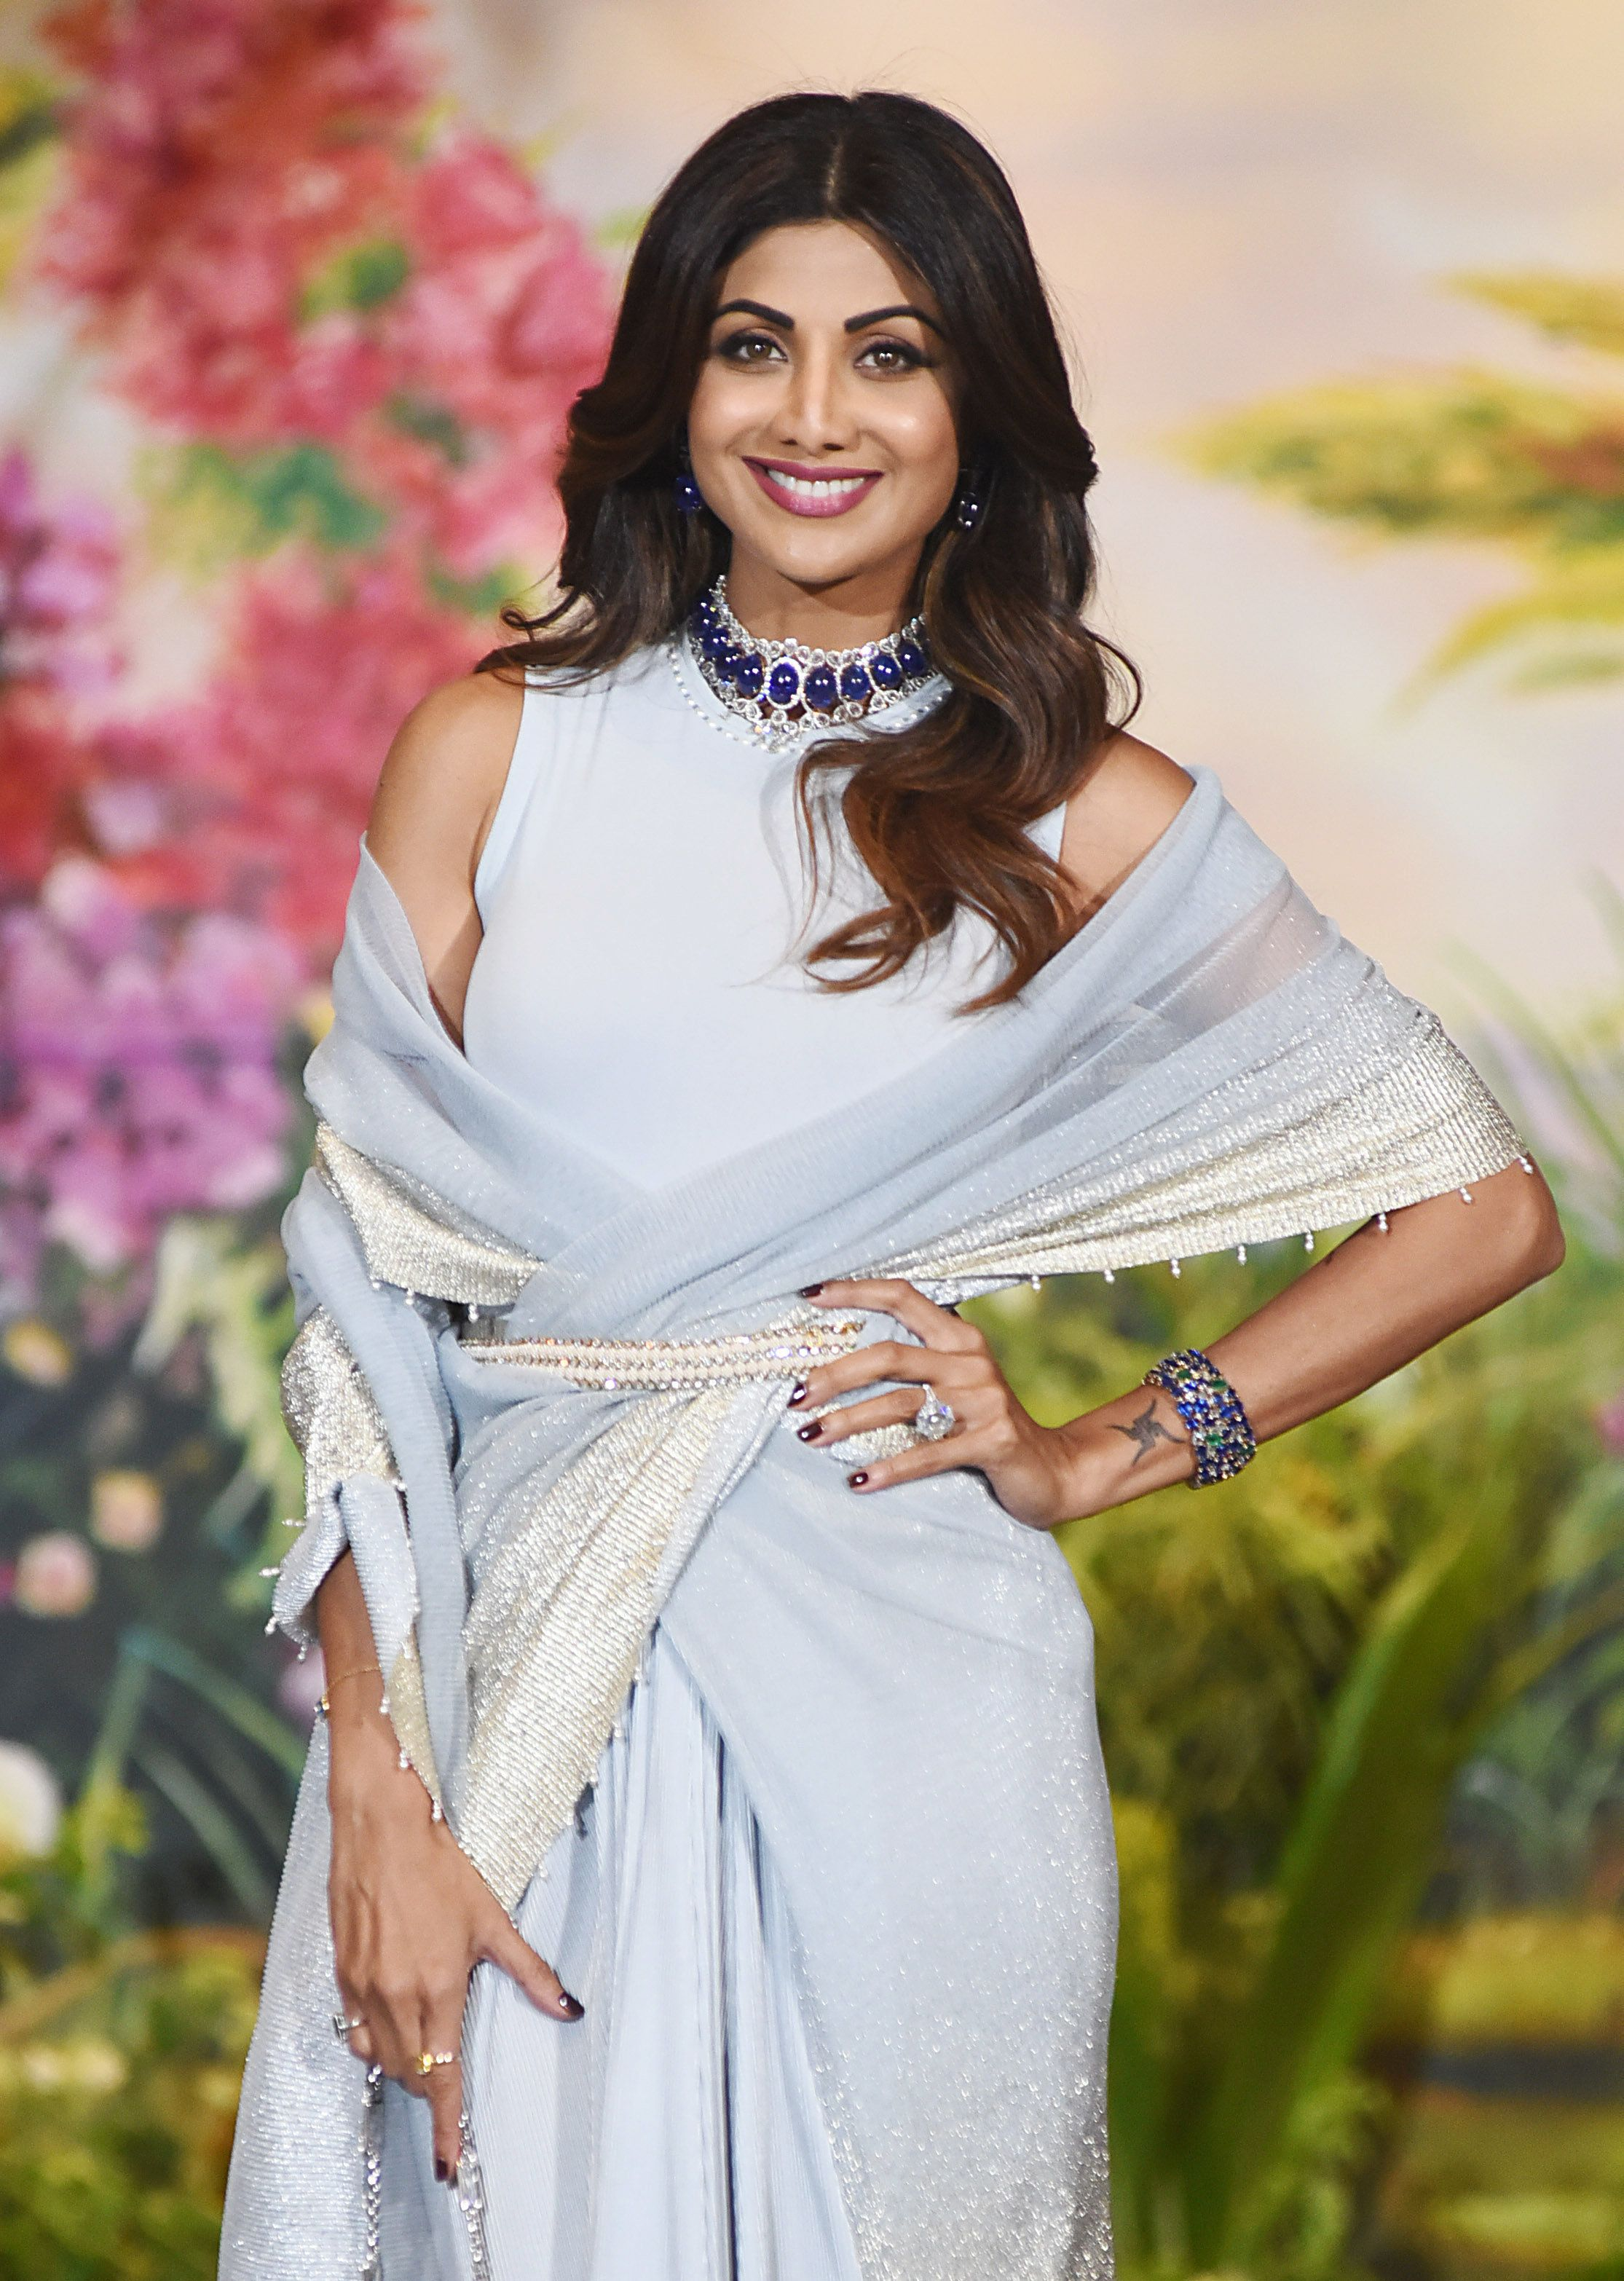 CBB: Shilpa Shetty Receives Apology From Qantas Airlines After Accusing Staff Member Of